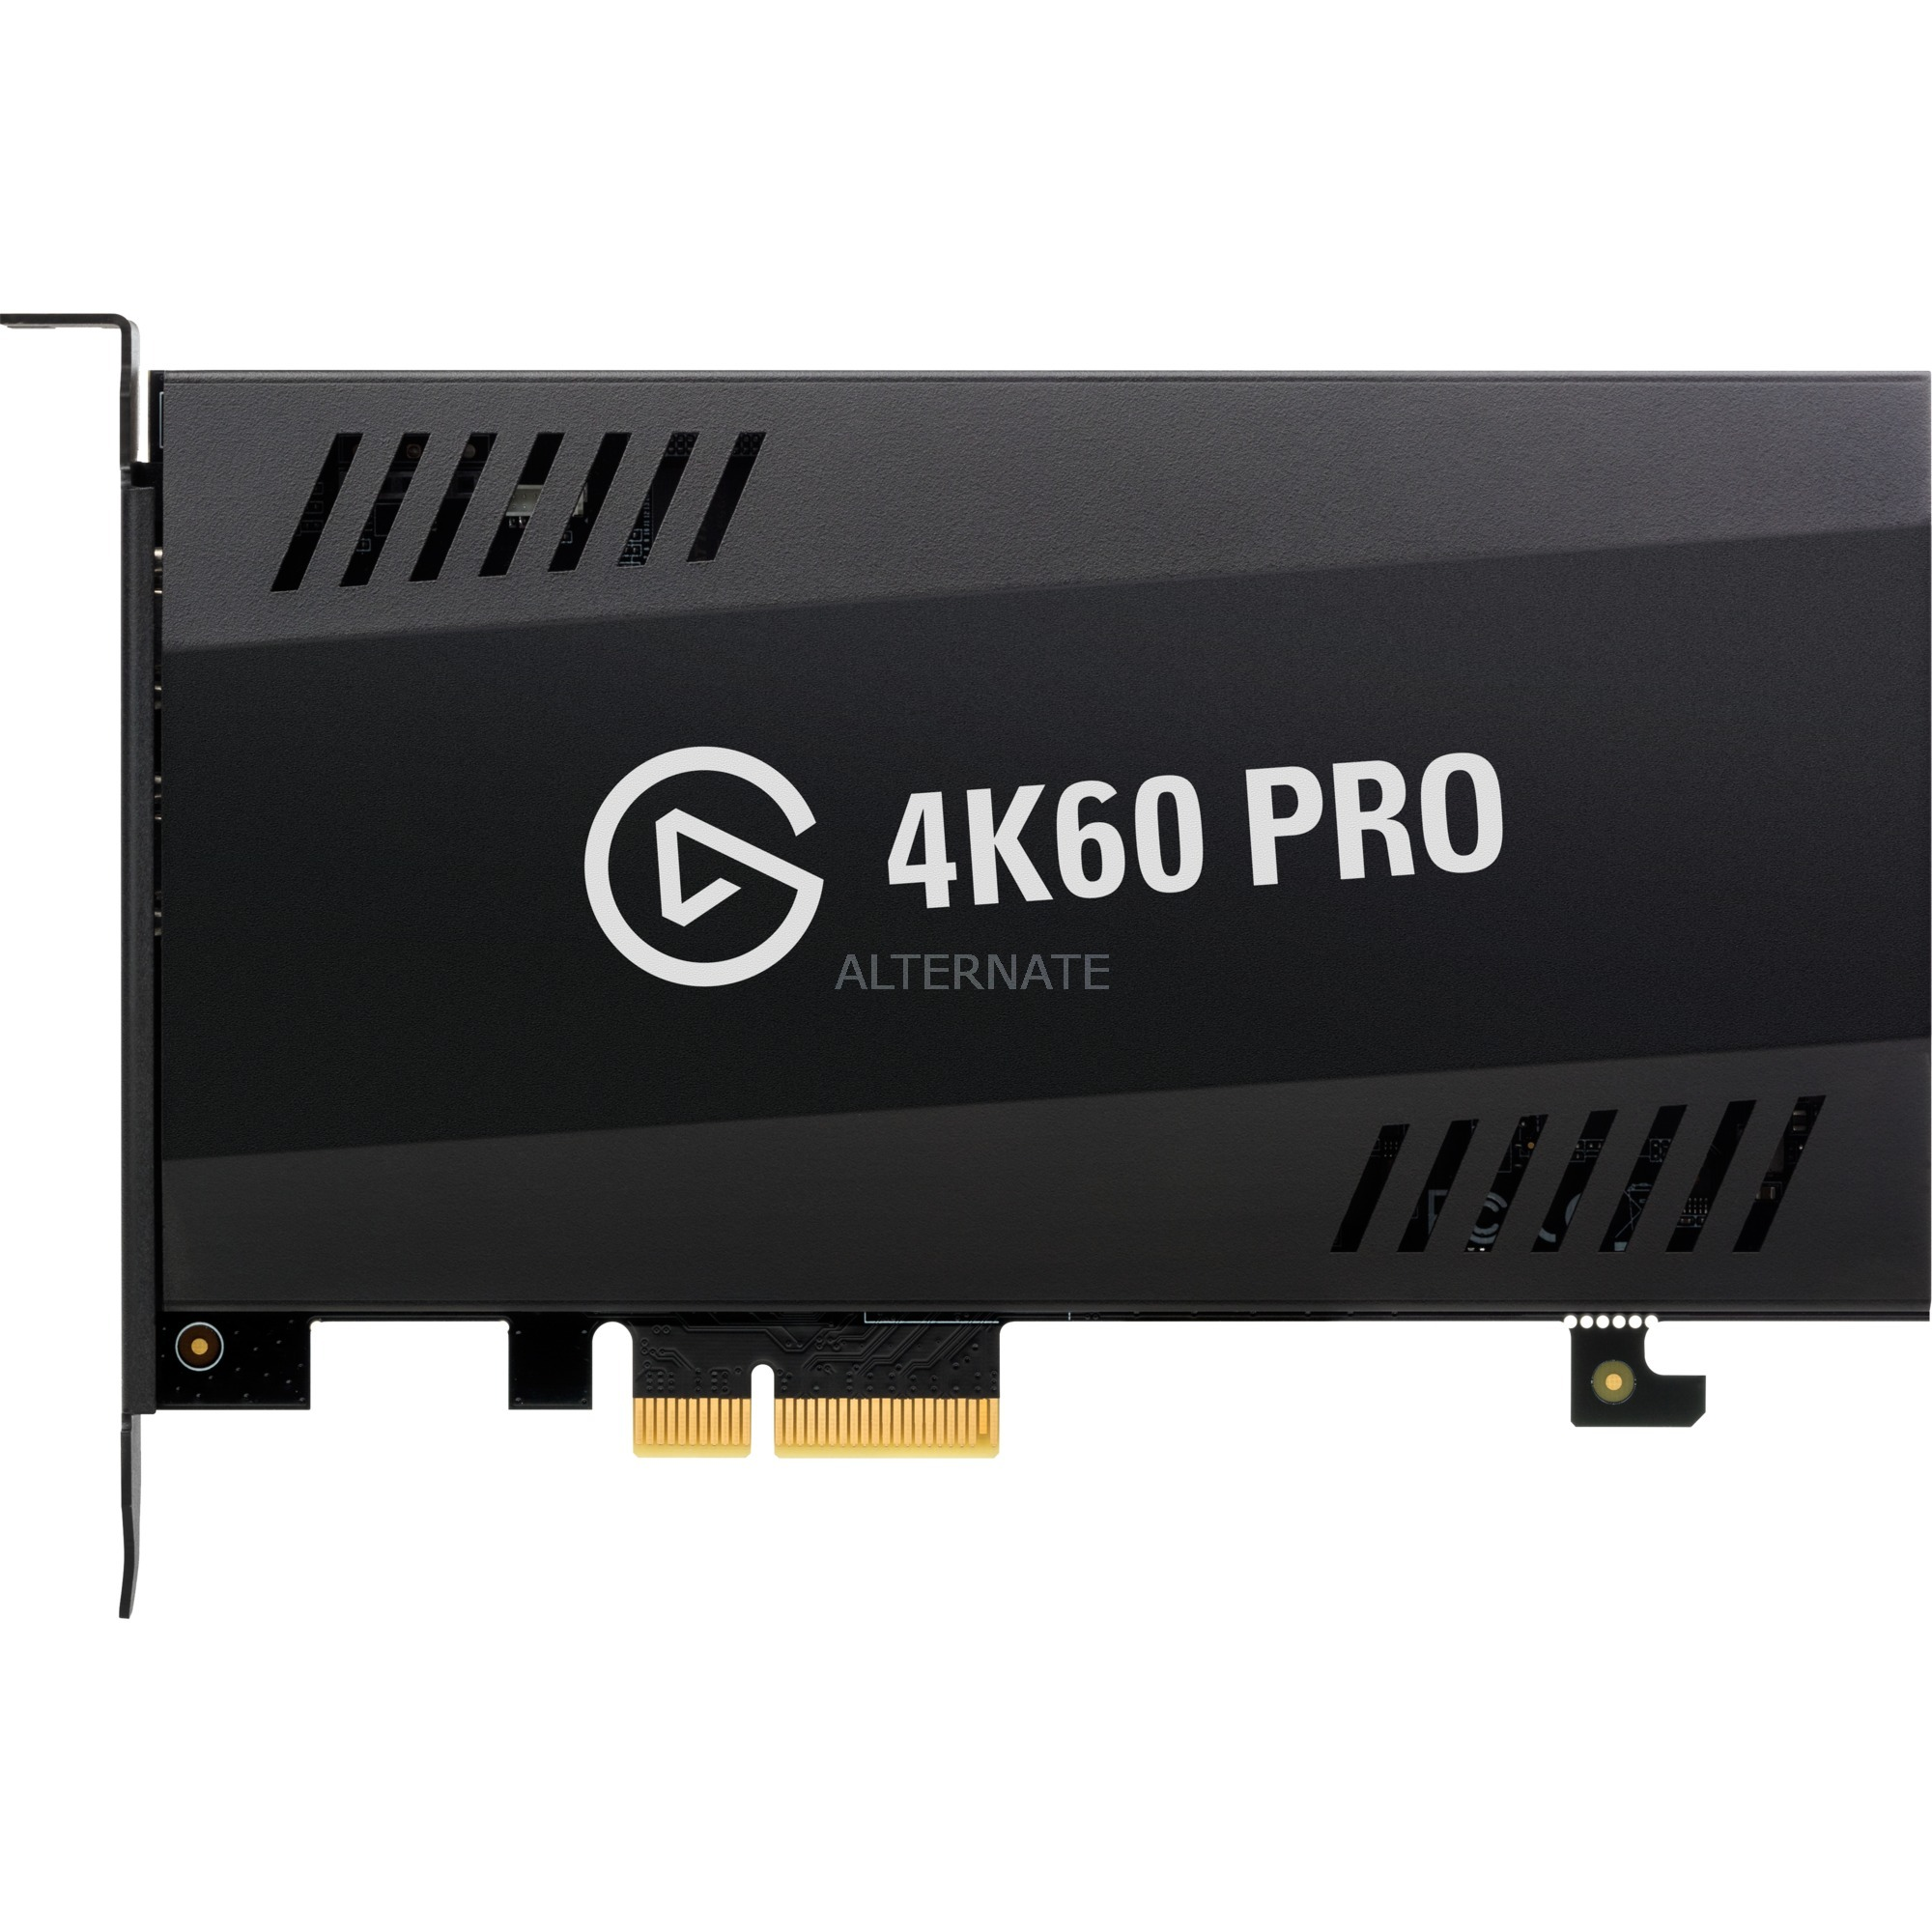 Game Capture 4K60 Pro dispositivo para capturar video Interno PCIe, Tarjeta de captura